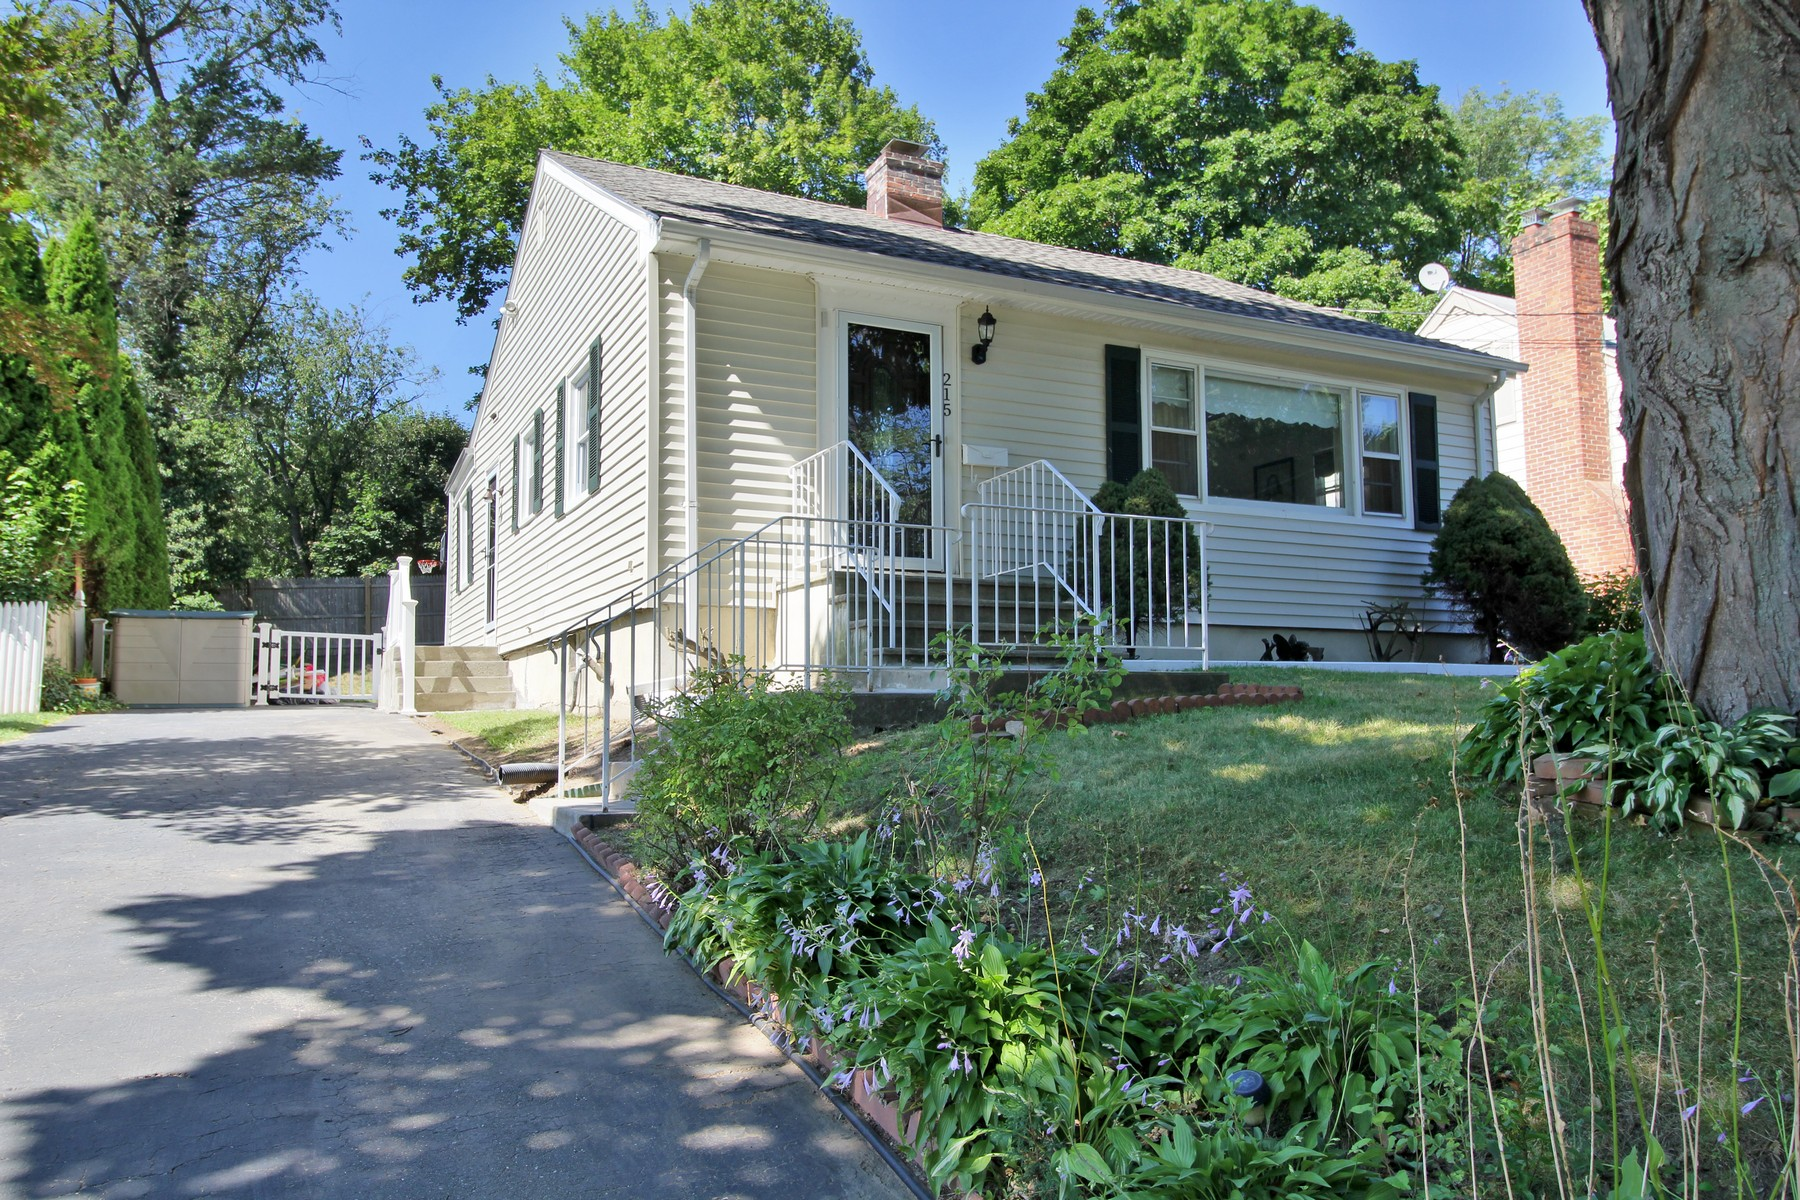 Property For Sale at Move-in Ready, Well Maintained Home on a Stratfield Cul-de-Sac